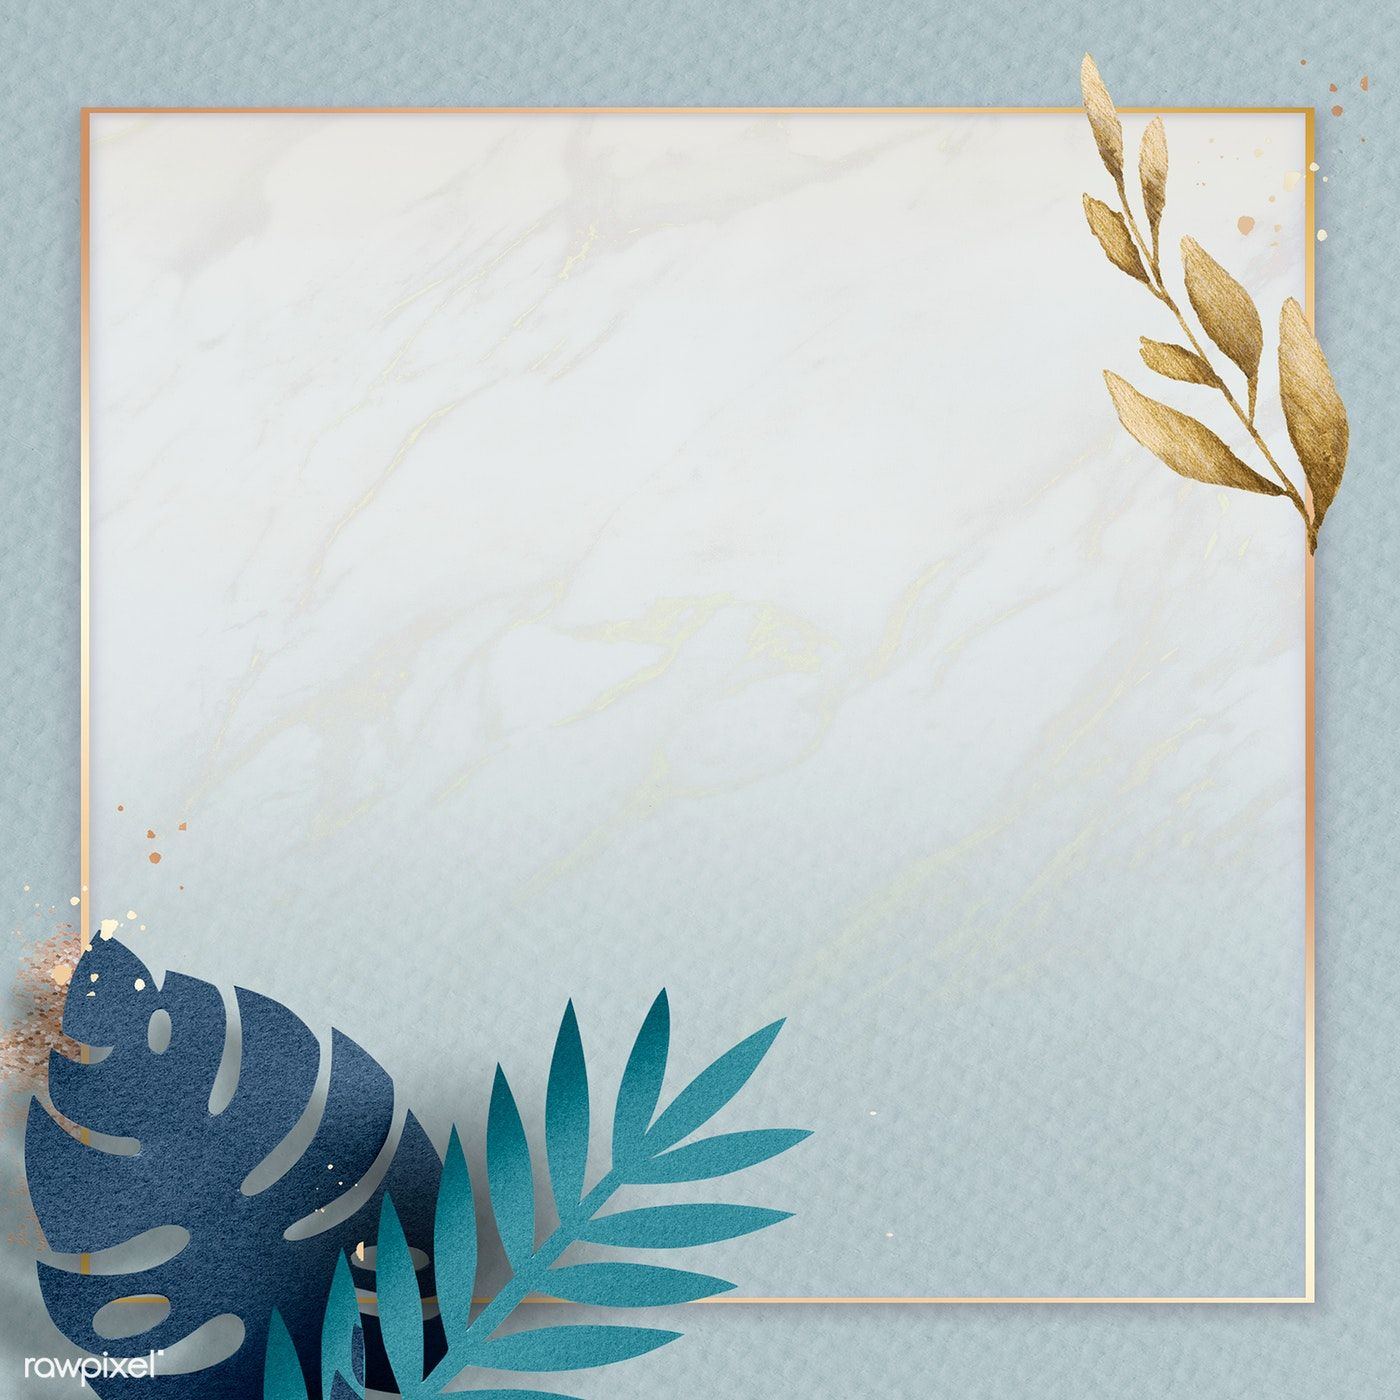 Blank Square Leafy Golden Frame Premium Image By Rawpixel Com Adj Photoshop Wallpapers Photo Frame Gallery Framed Wallpaper